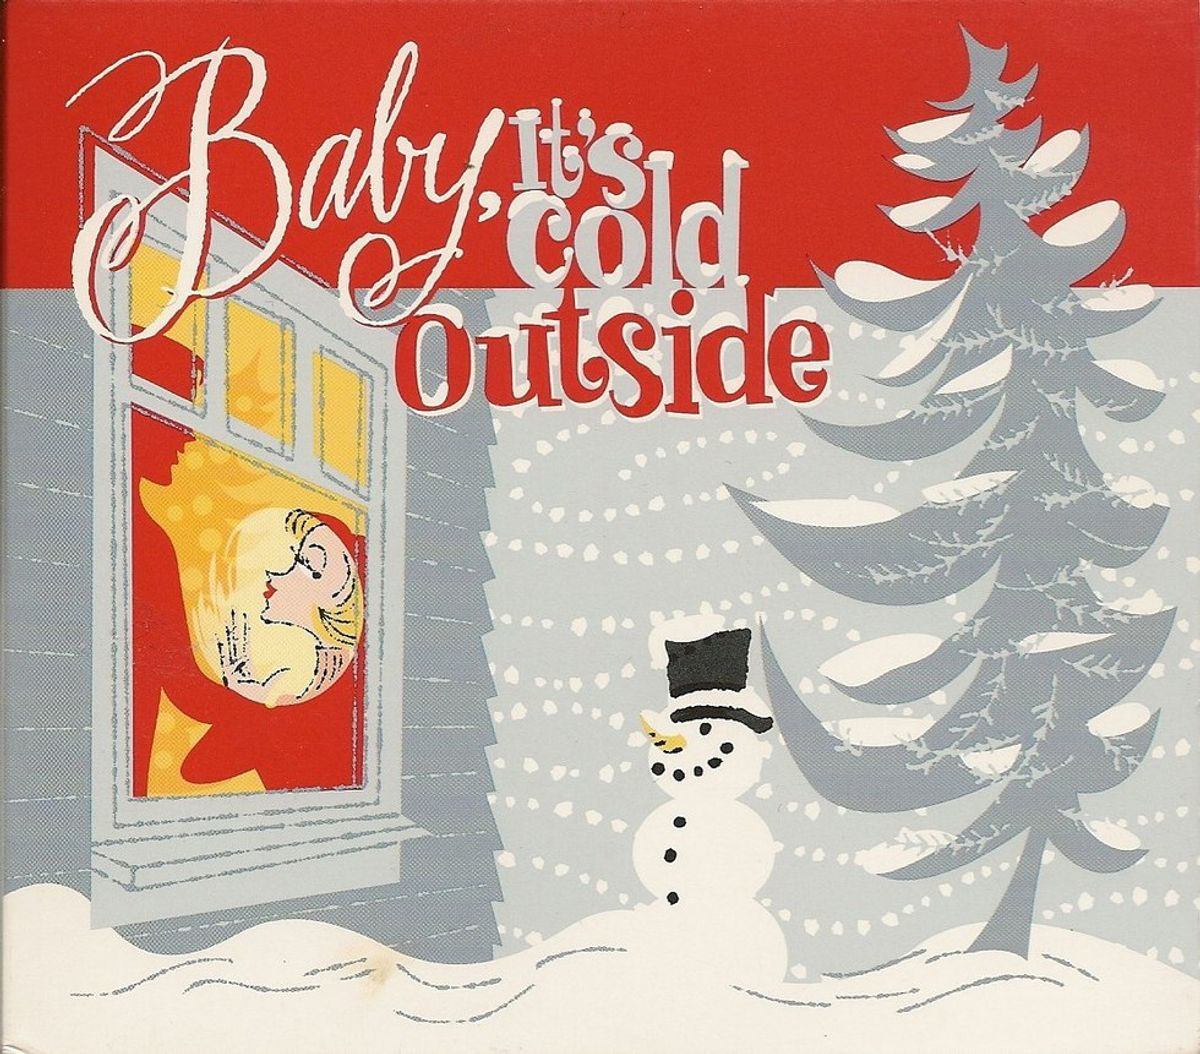 A Feminist's Defense Of Baby It's Cold Outside